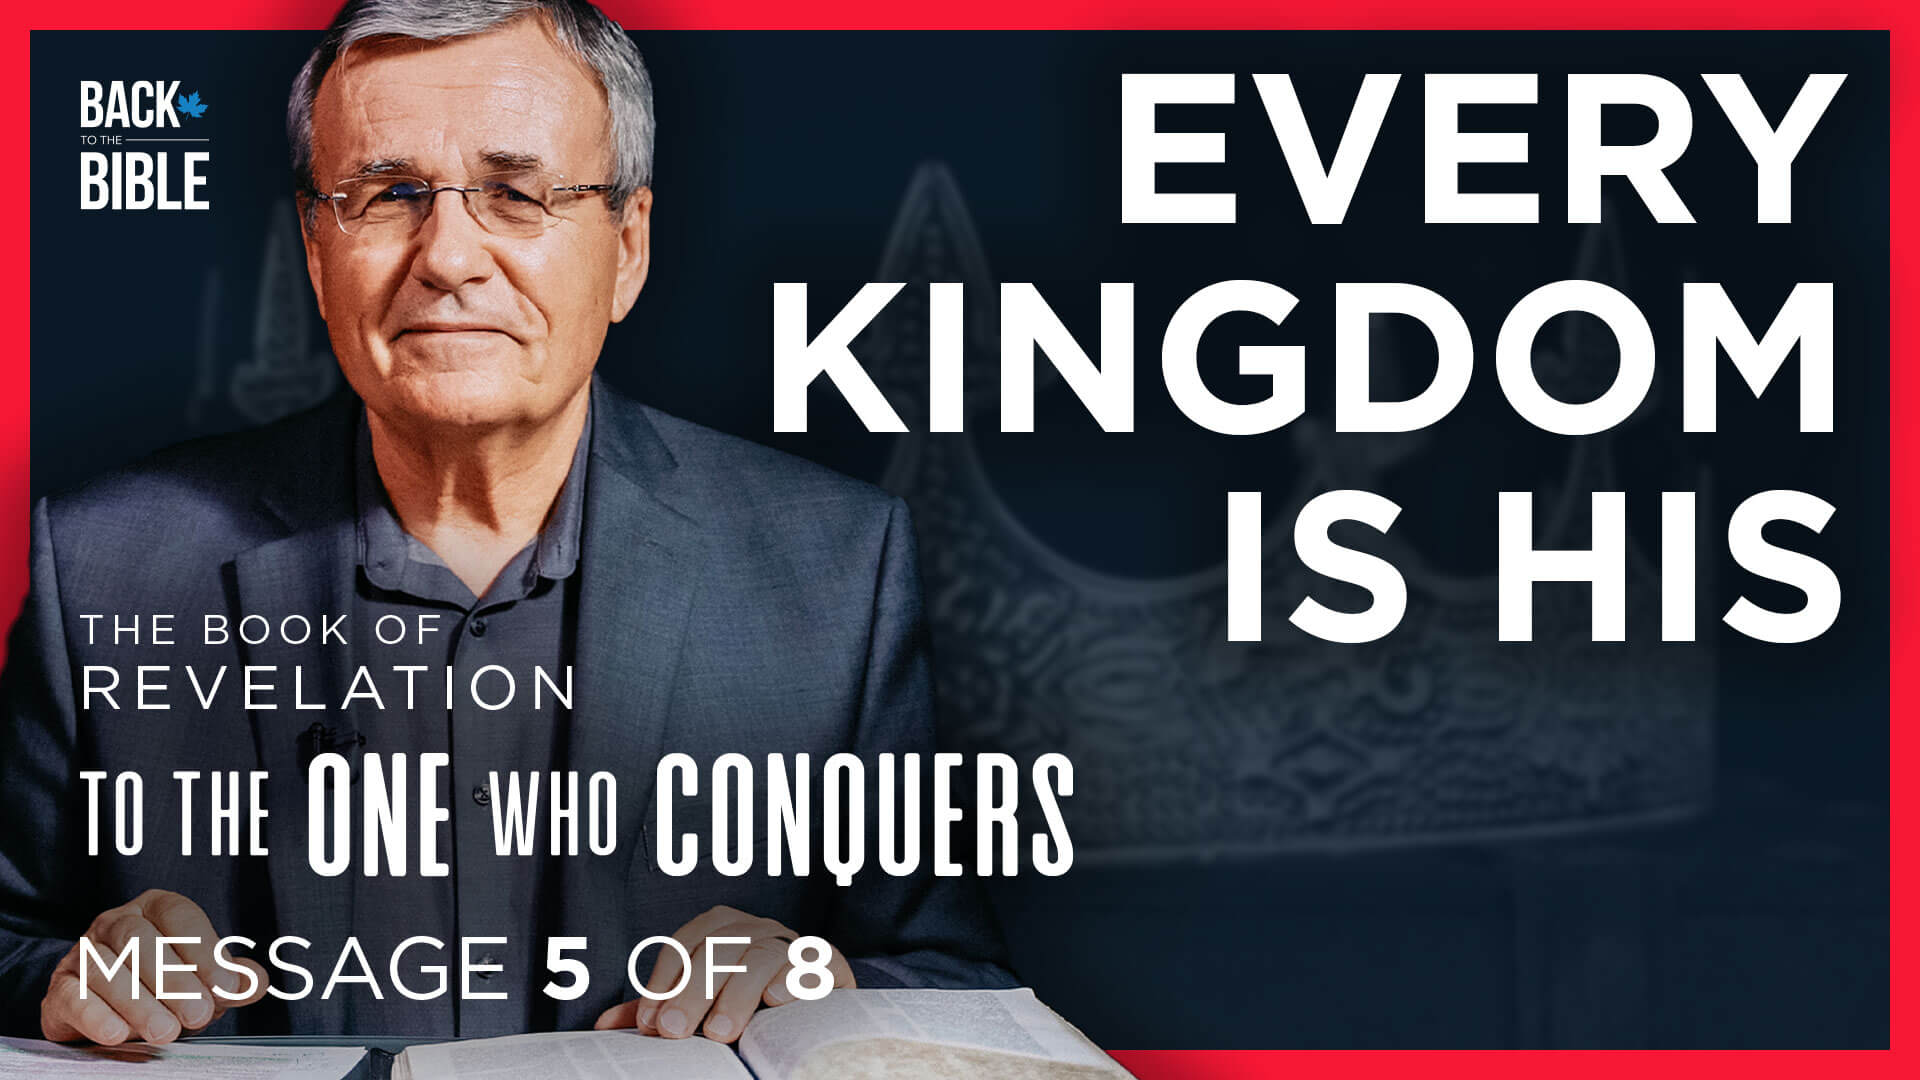 Every Kingdom is His - To the One Who Conquers - Dr. John Neufeld - Back to the Bible Canada